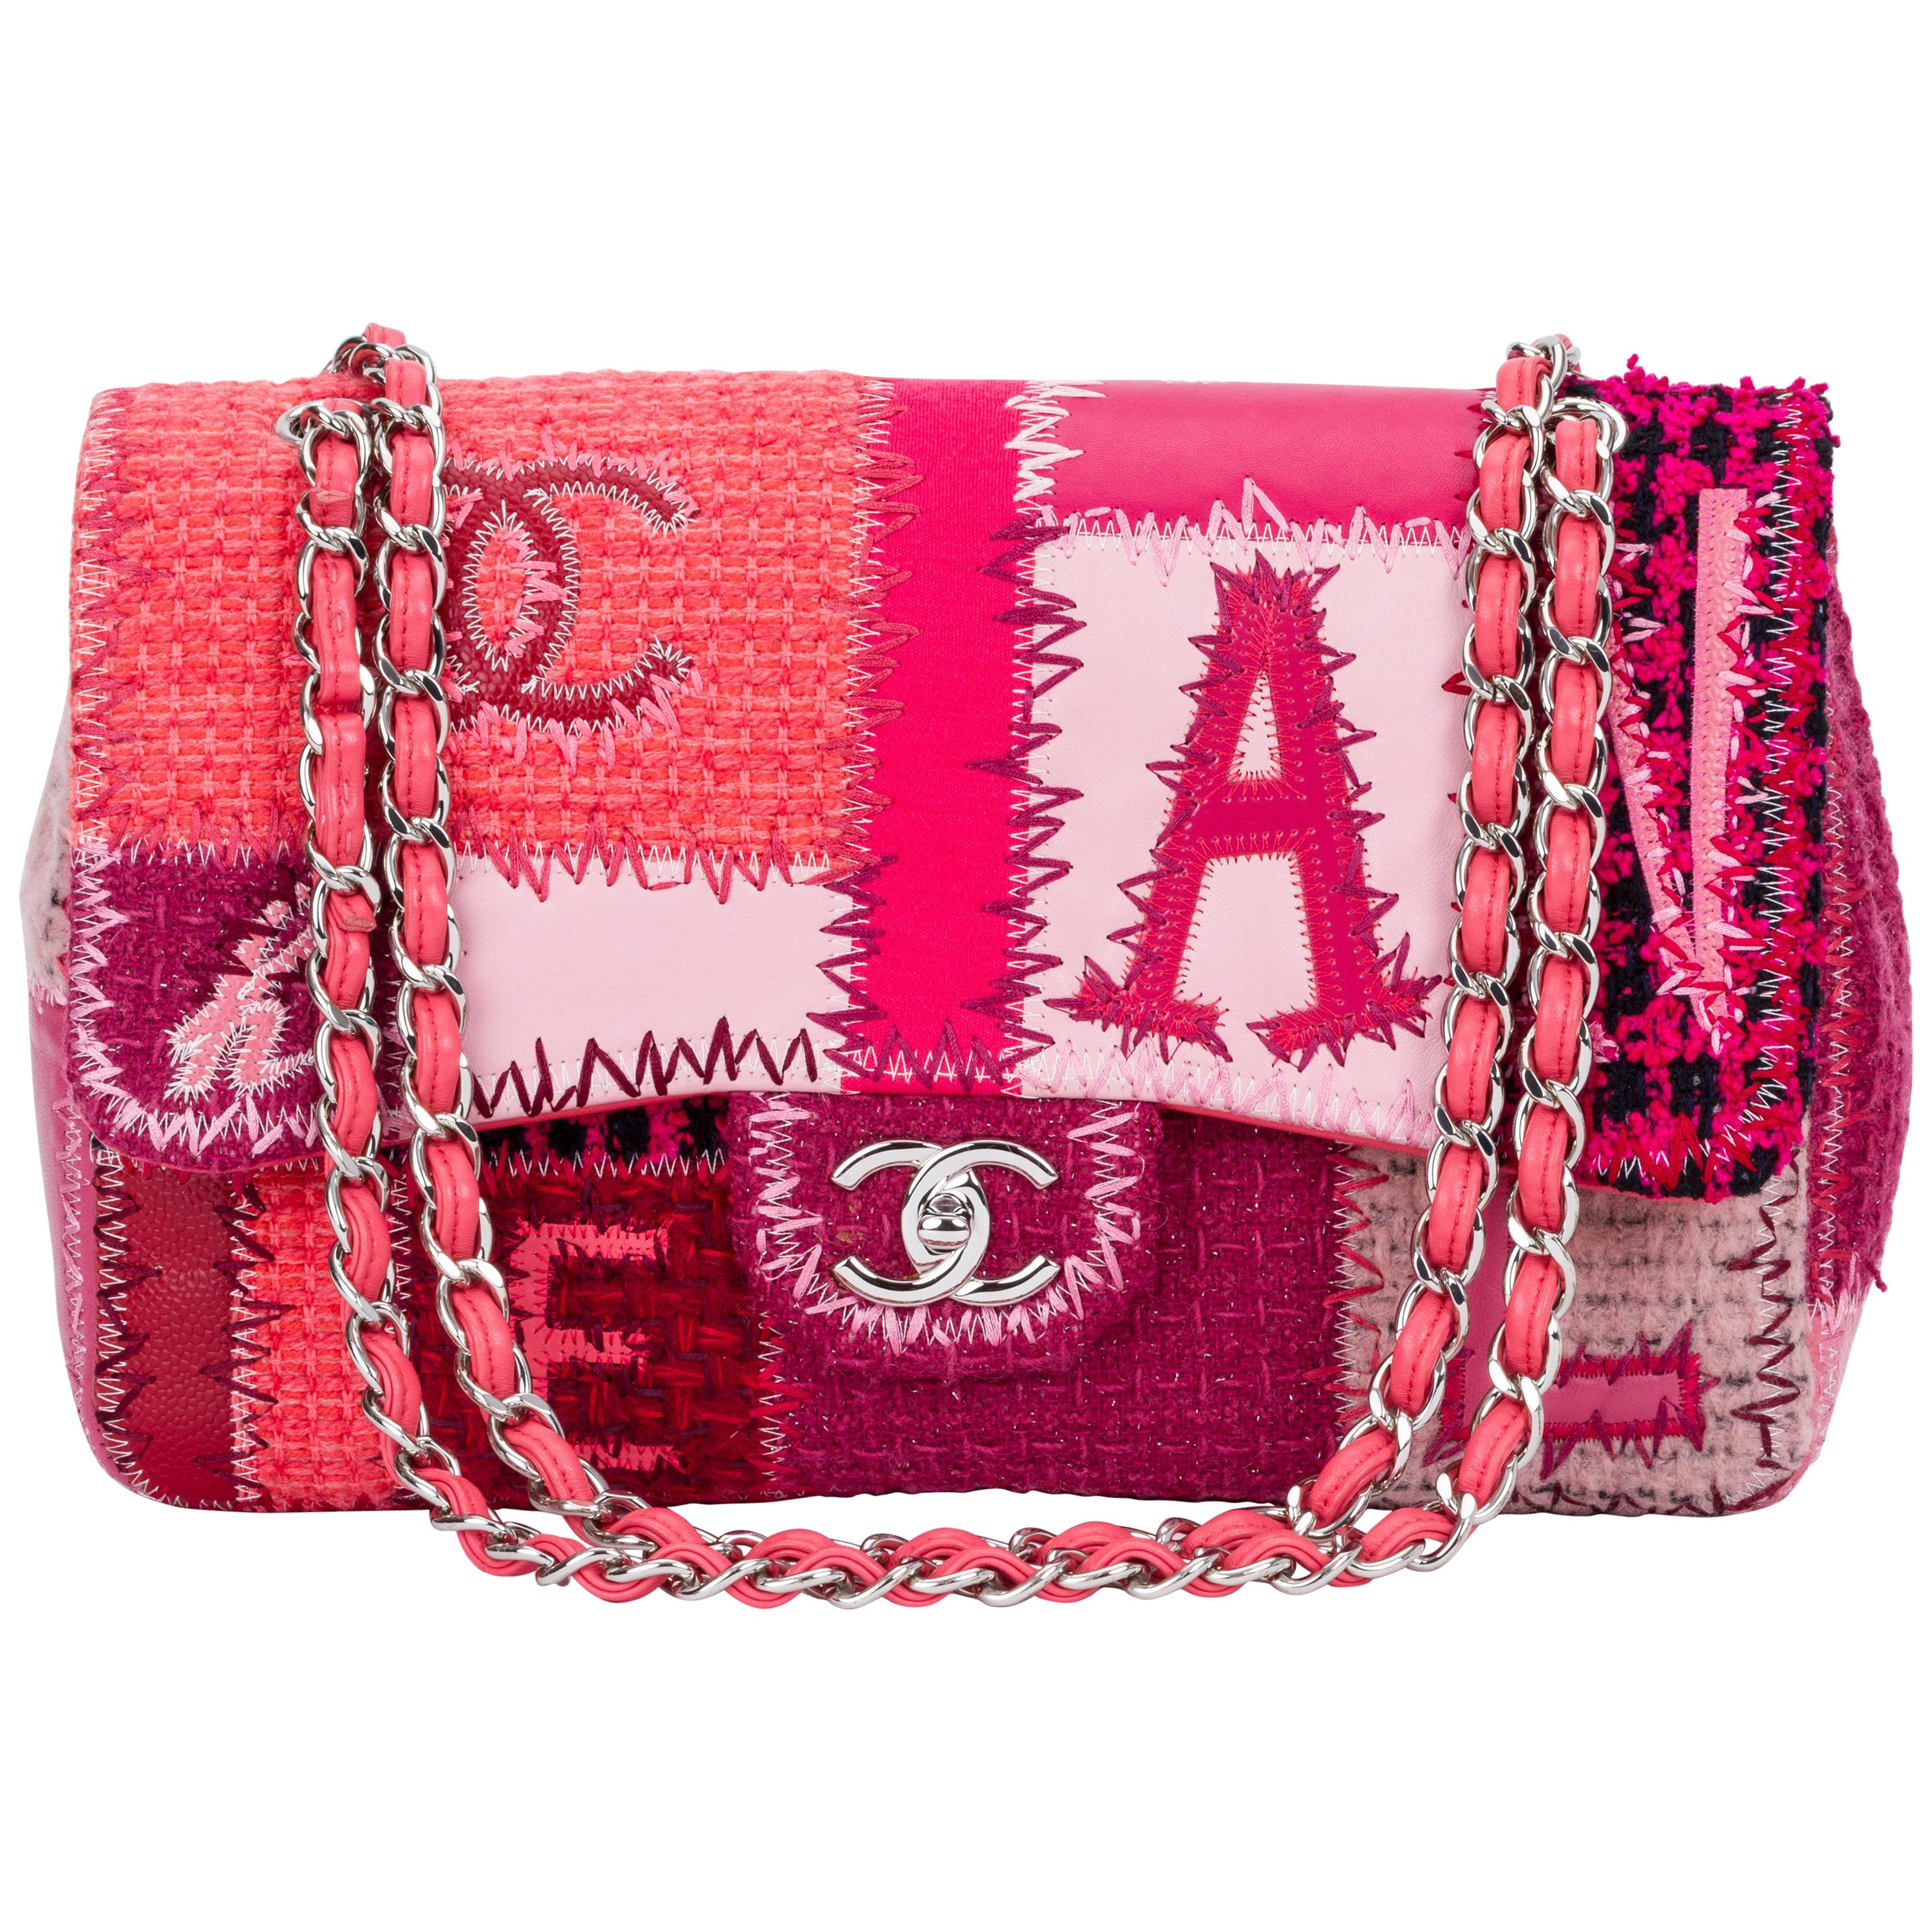 645b08bfb39a93 Pink Chanel Bags - 90 For Sale on 1stdibs